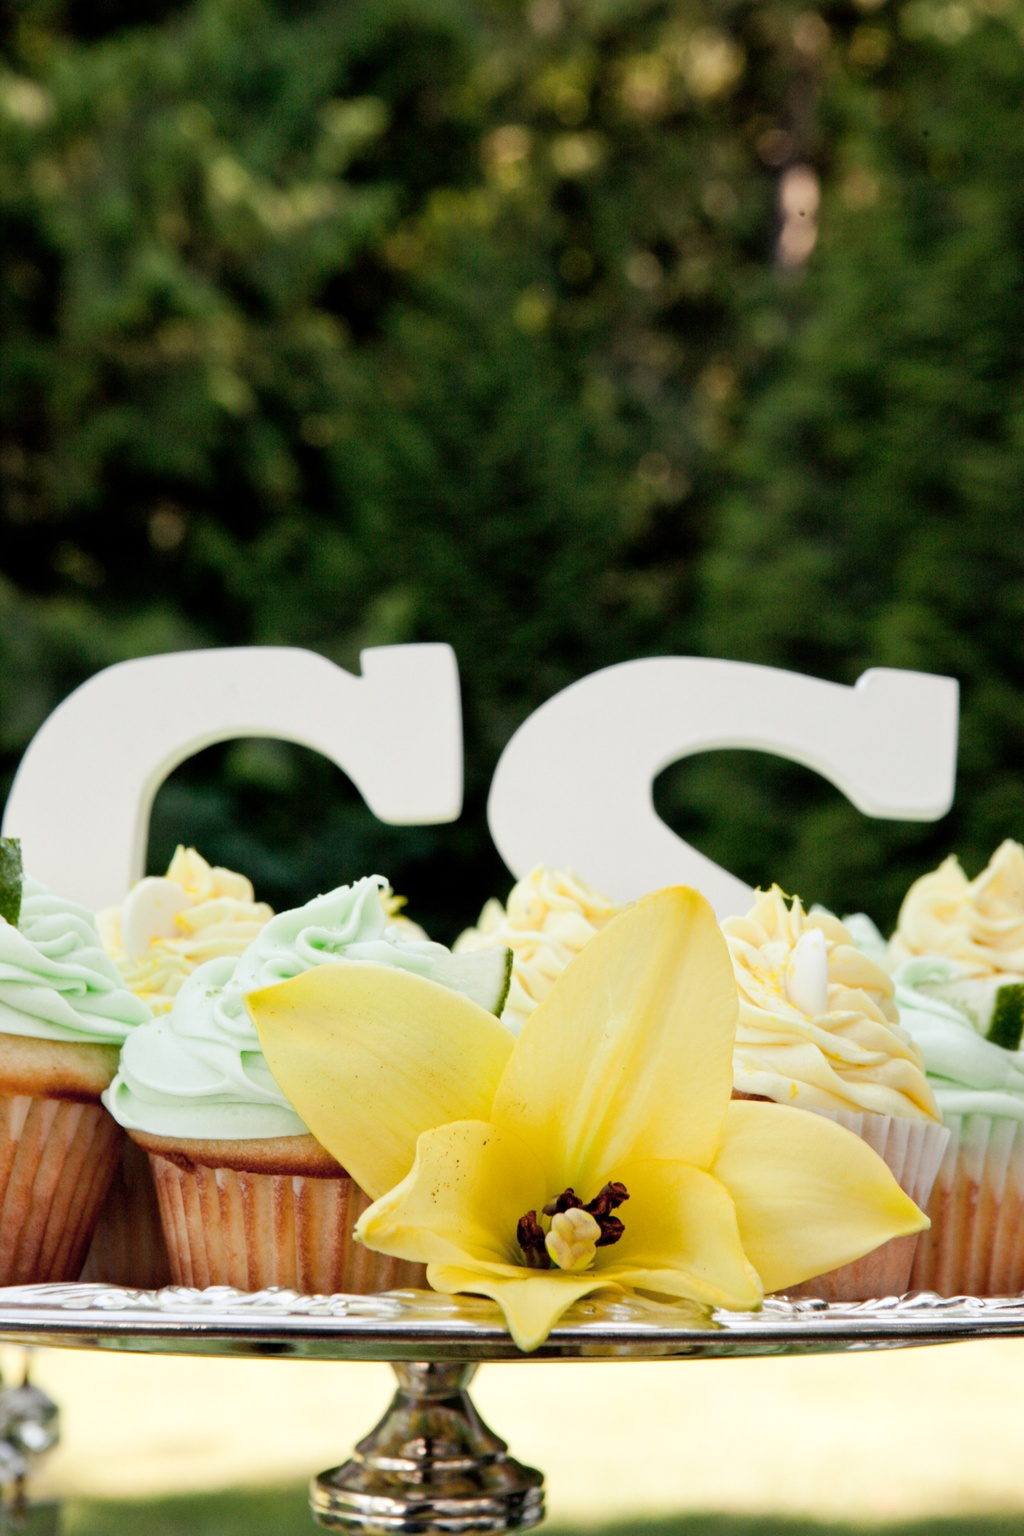 Outdoor-wedding-reception-wedding-cupcakes-monogram-details.full